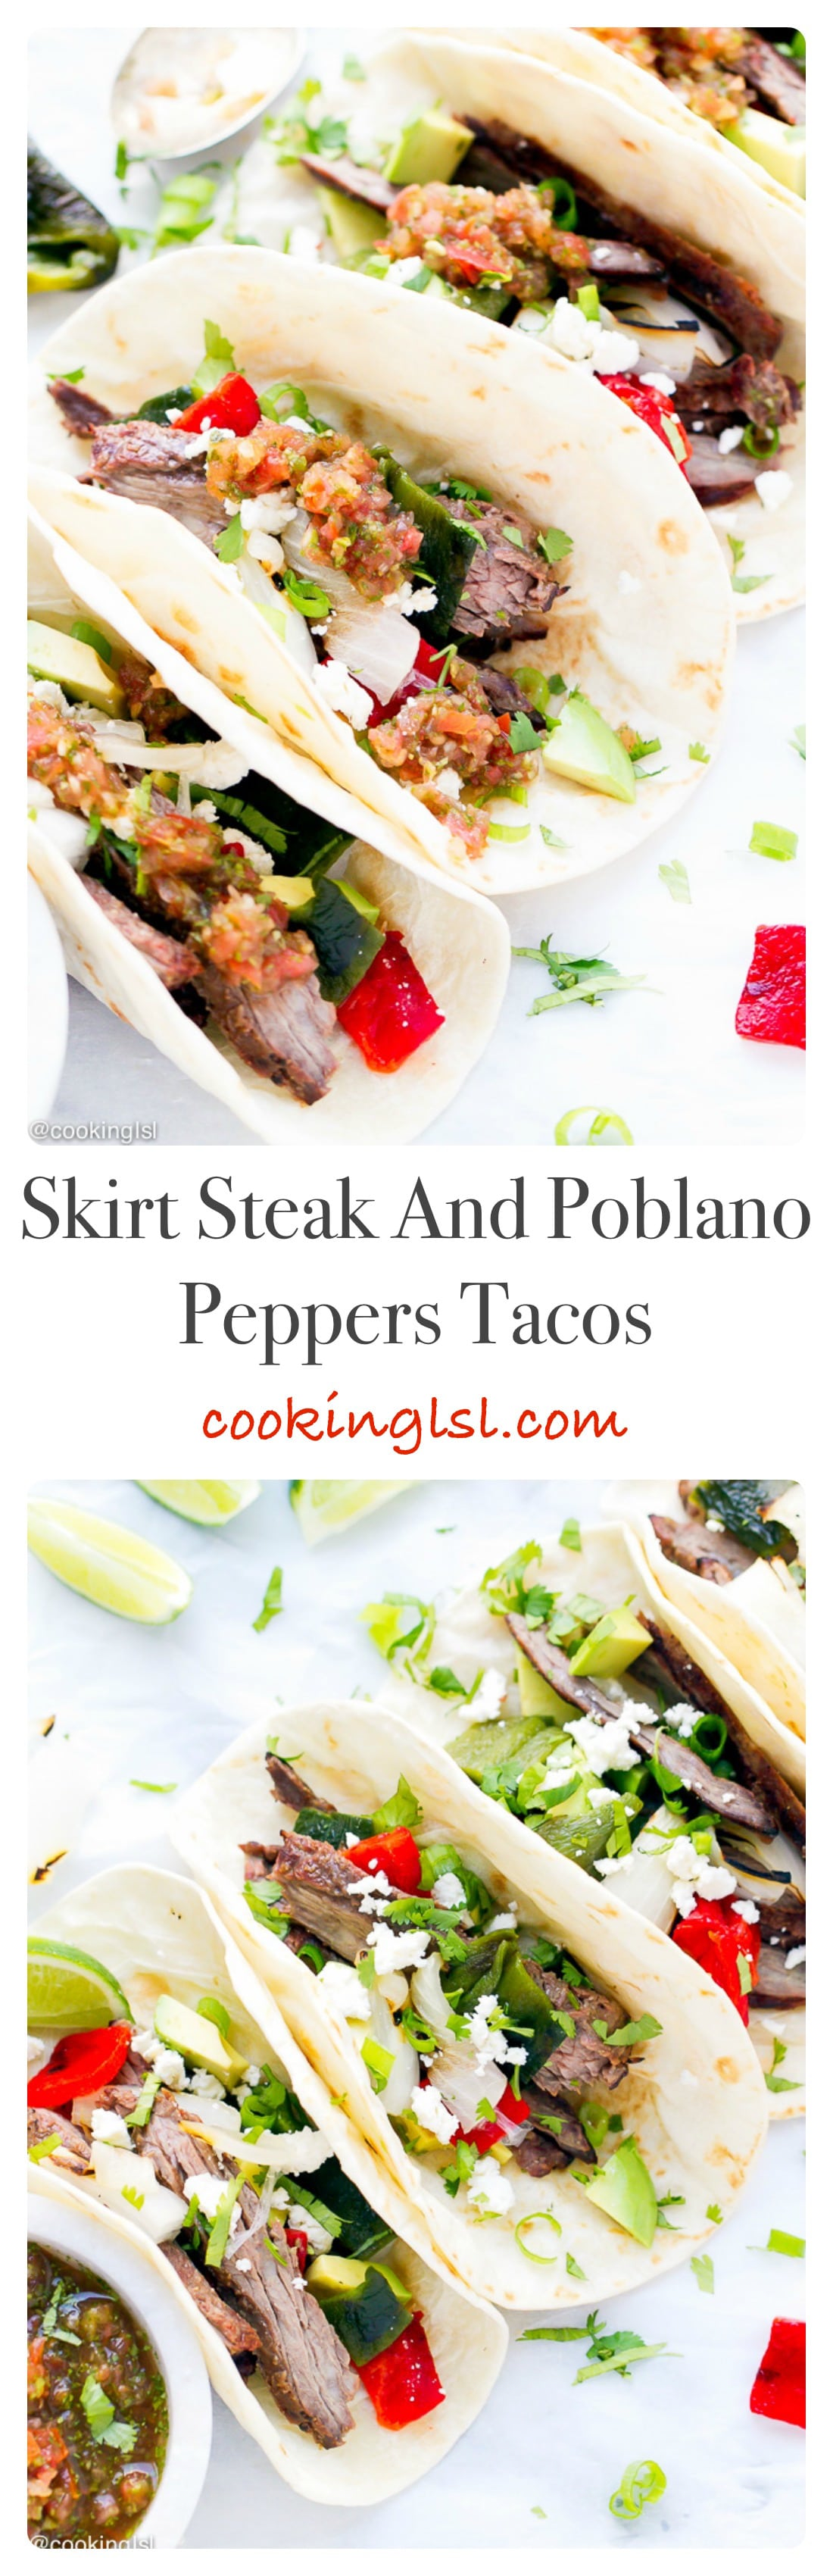 Easy Flavorful Mexican Food Skirt Steak And Poblano Peppers Tacos Recipe